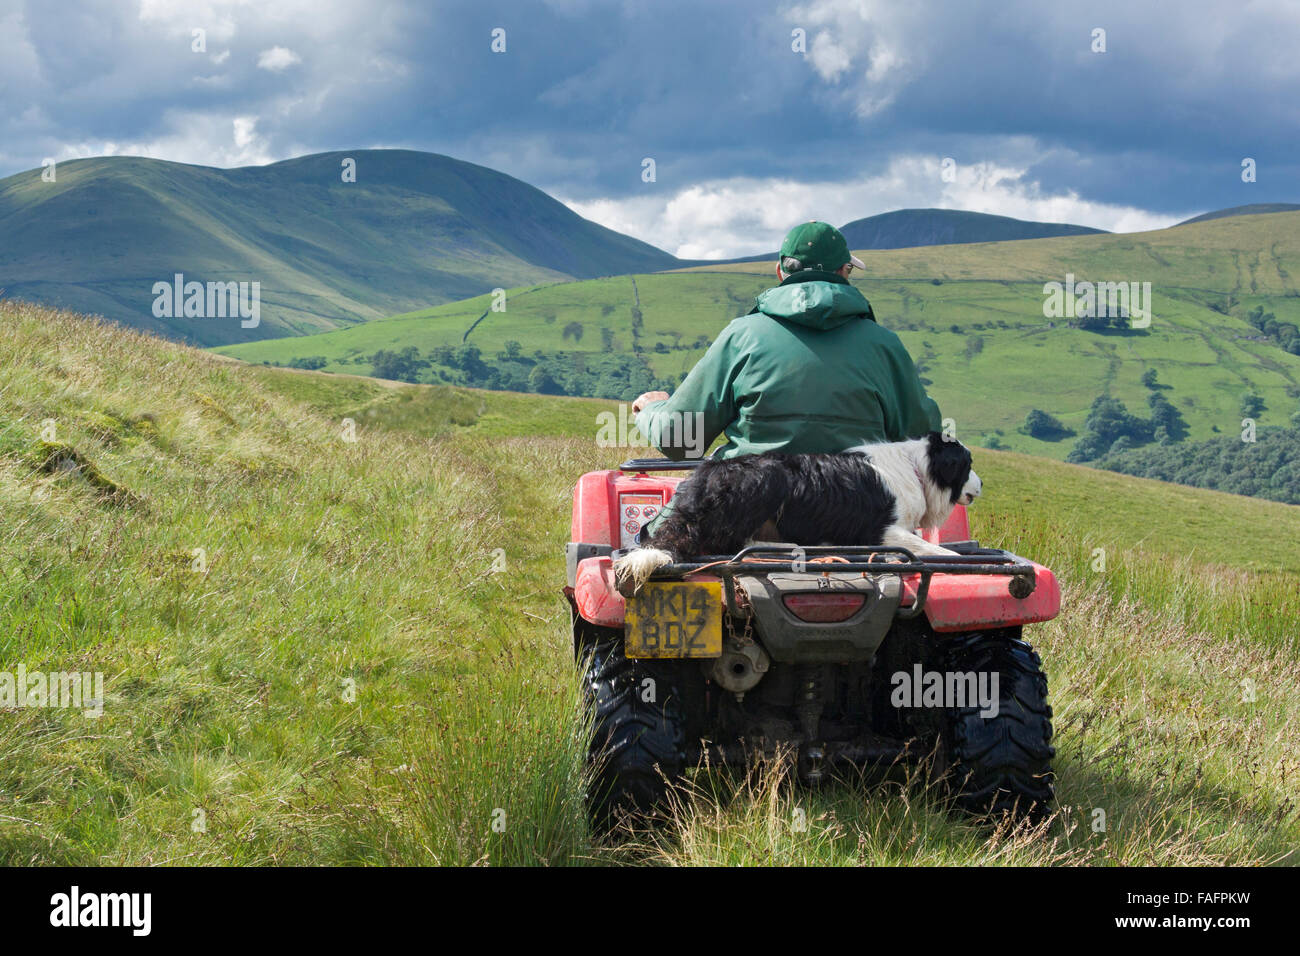 Shepherd on a quad bike with sheepdog sitting behind him, driving on moorland, UK - Stock Image